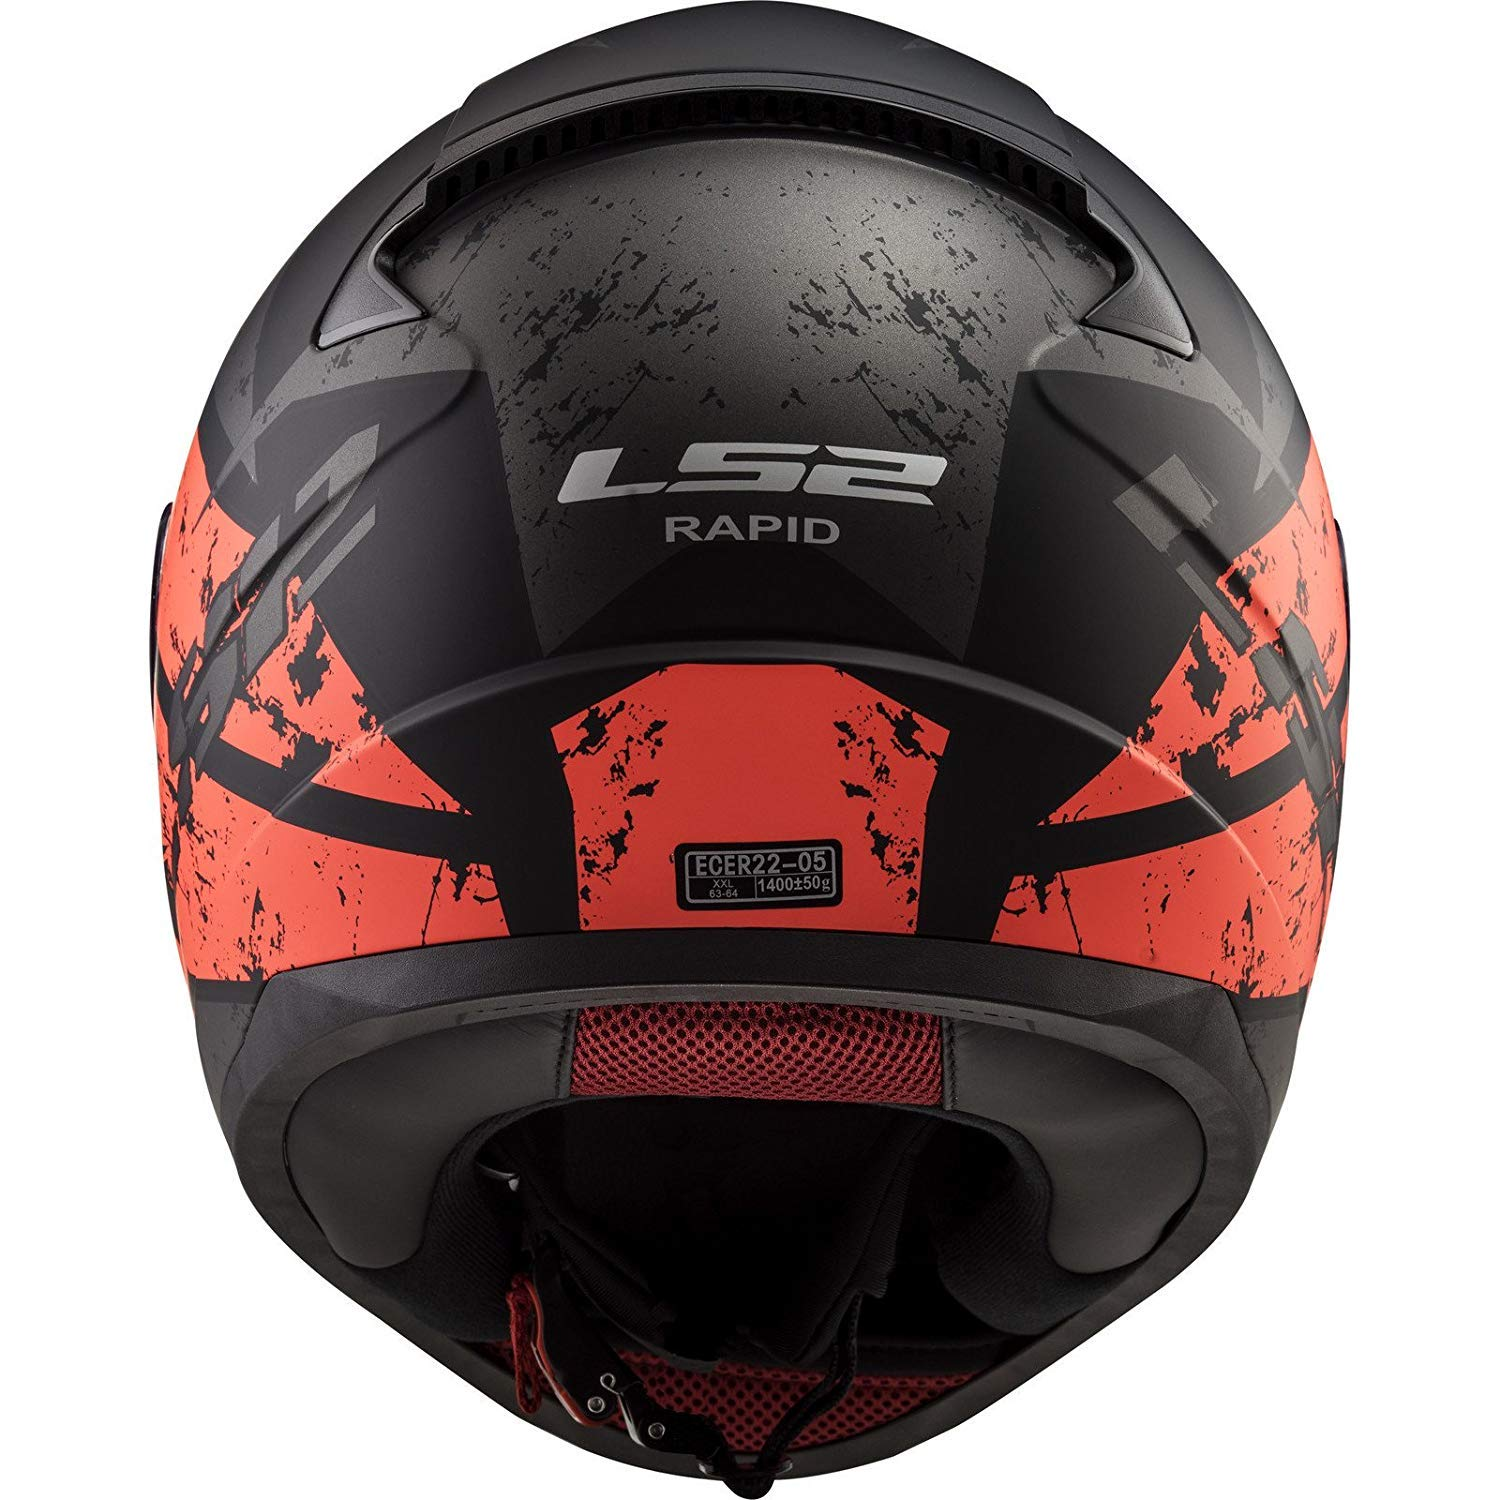 Tute Colour M Poppies Rosa Motorcycle Helmets LS2 FF353 Rapid Full Face Motorcycle Scooter Sports Touring Full Face Racing Helmet